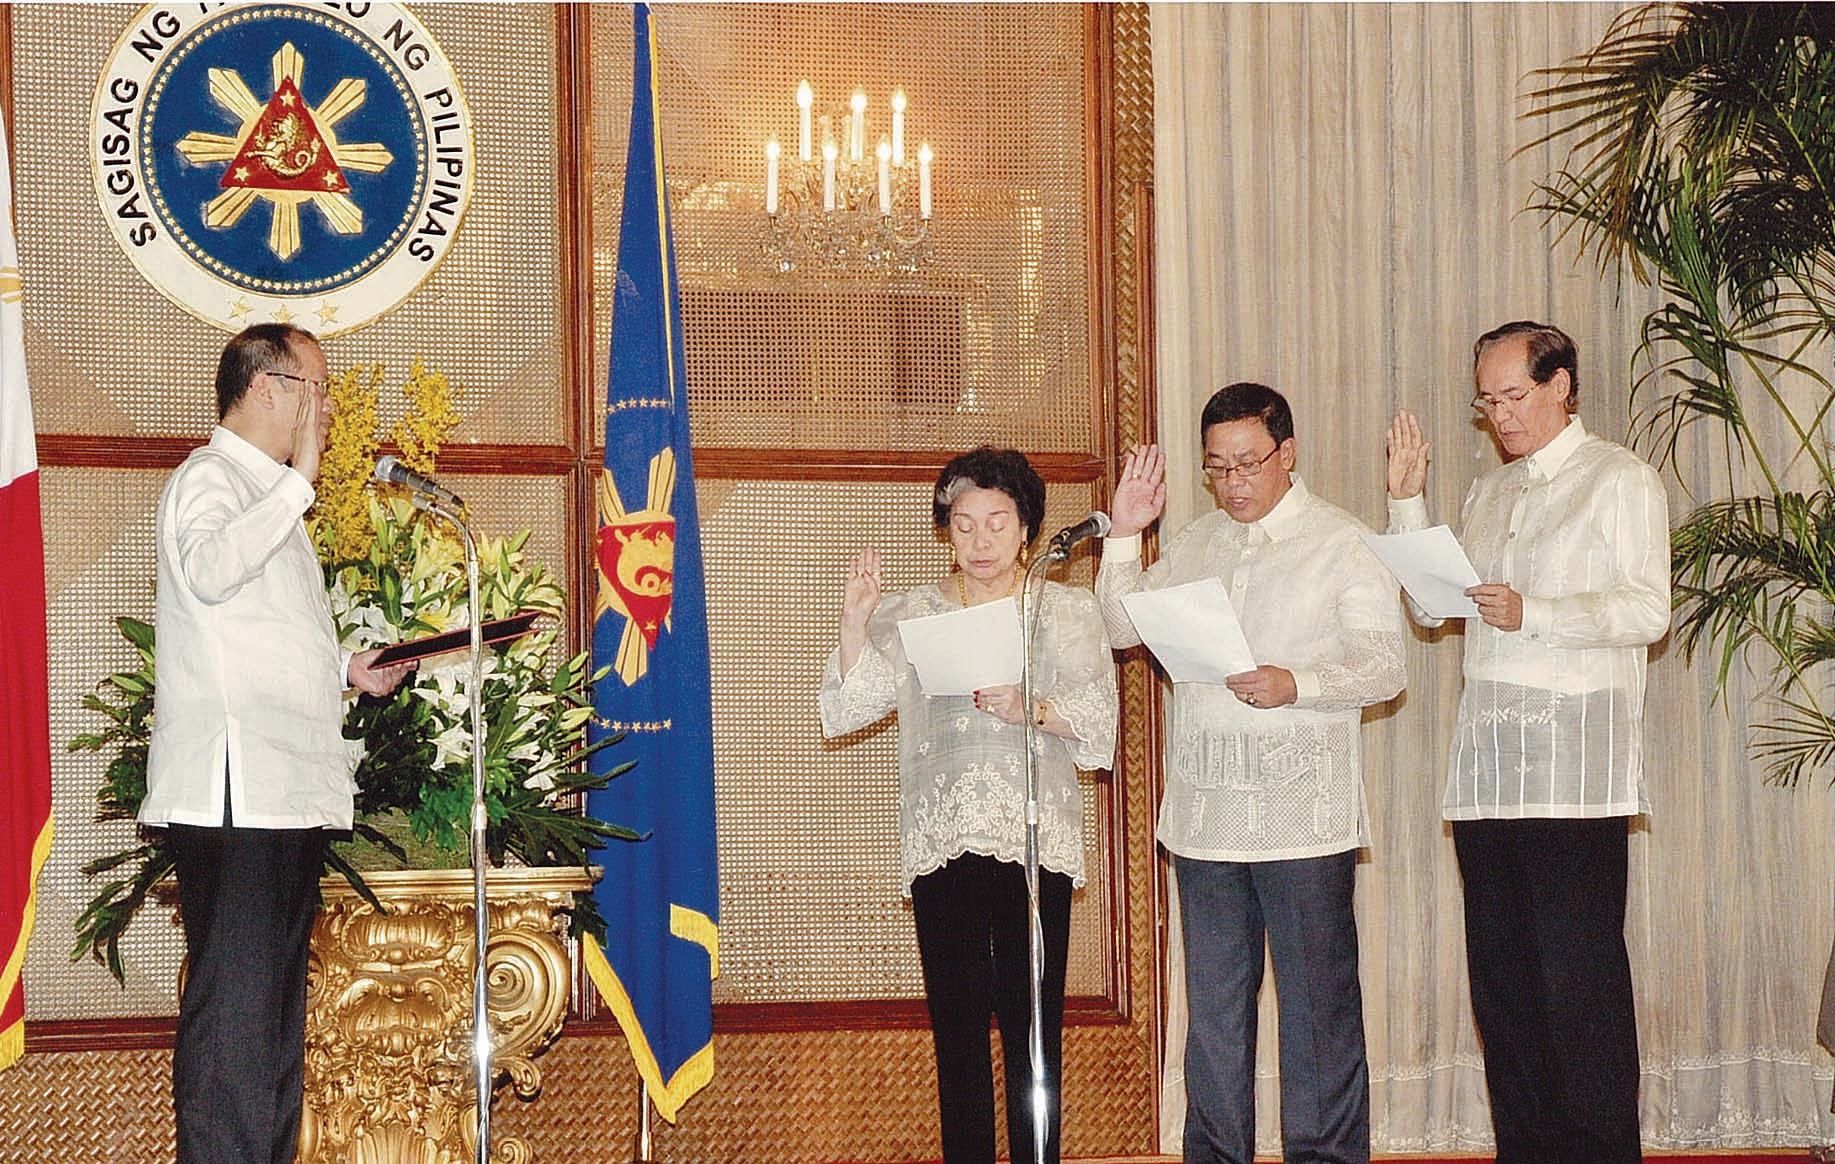 Philippine ambassador to Spain Carlos Salinas (right) taking his Oath of Office before President Benigno C. Aquino in Malacanang.